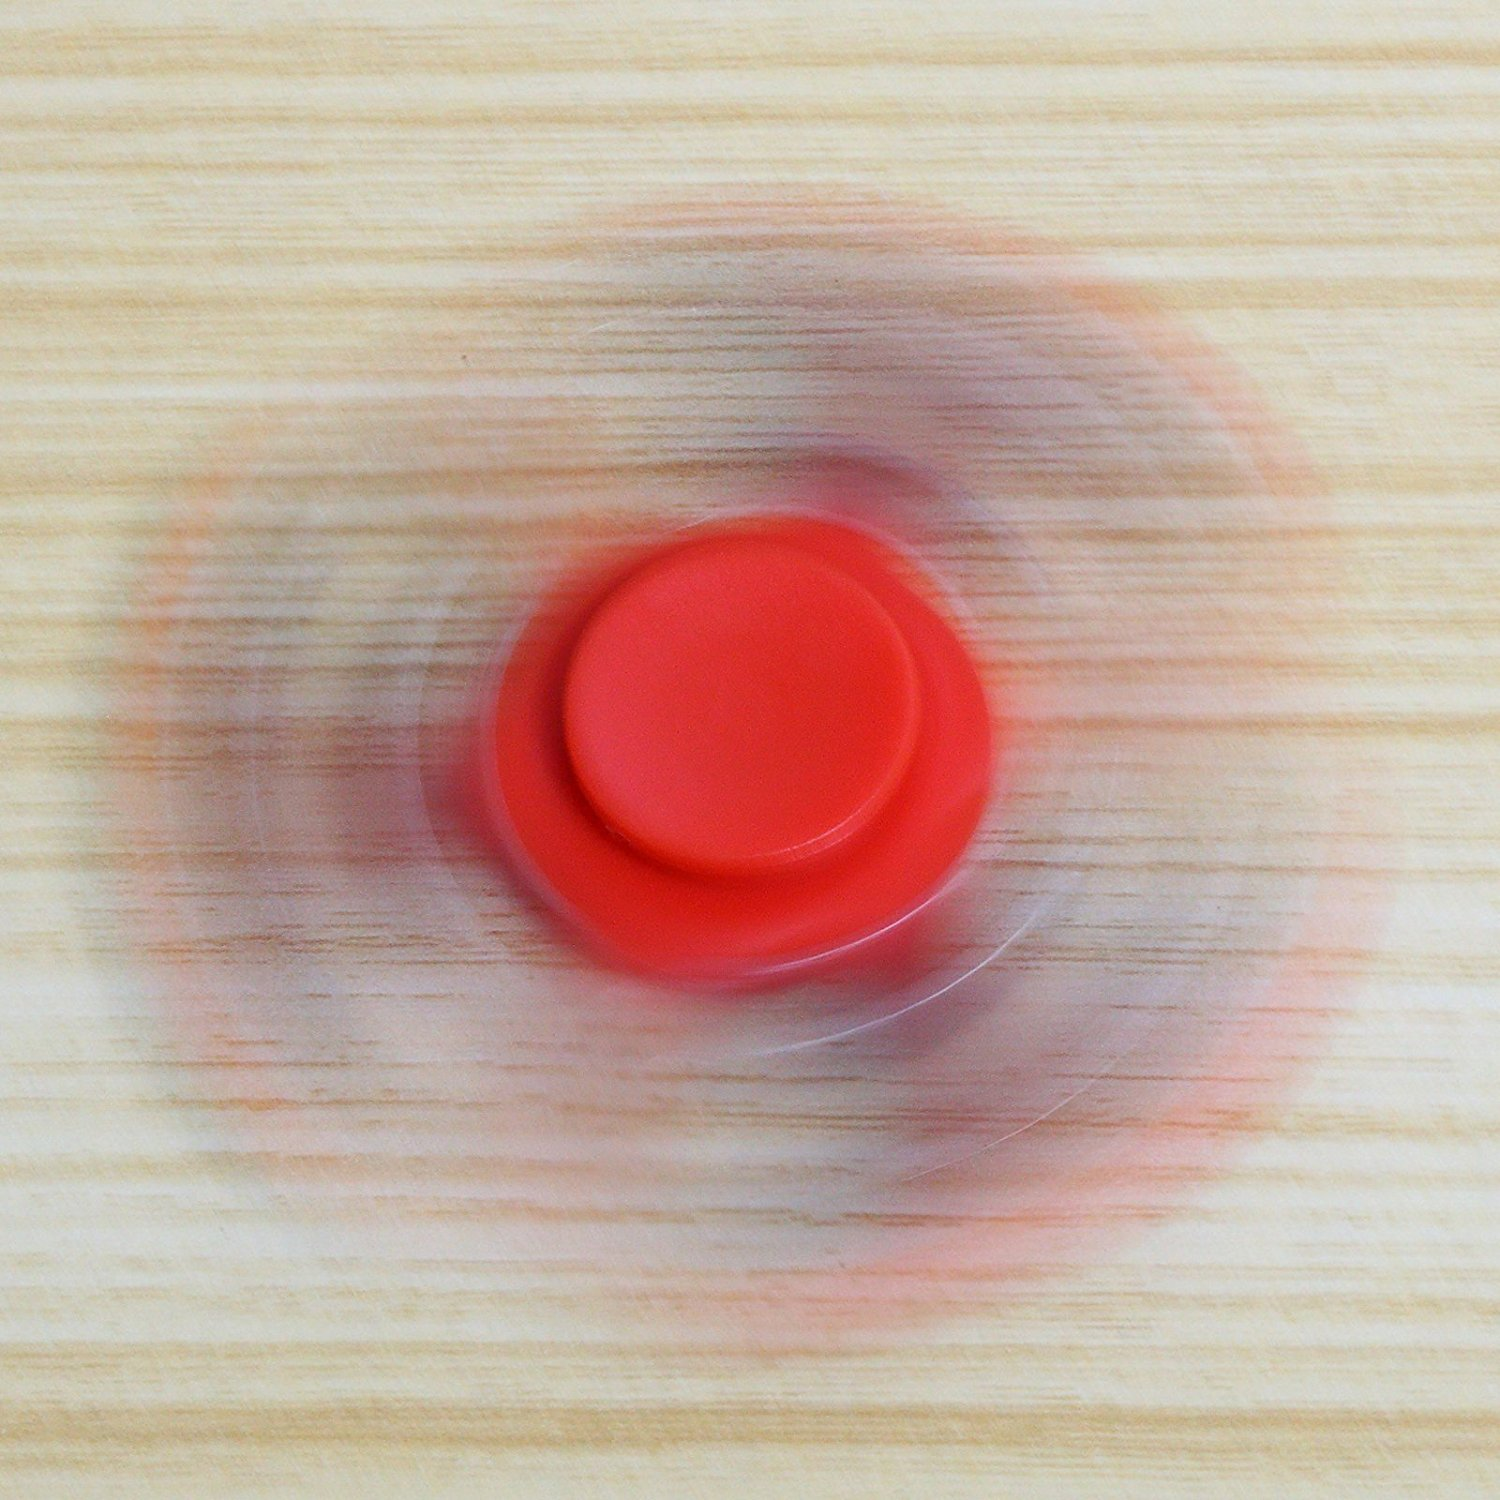 XY Fidget Hand Spinner Toy Perfect For Anxiety, ADHD, ADD and Autism Adult Children, with Ceramic Bearing. (Red)